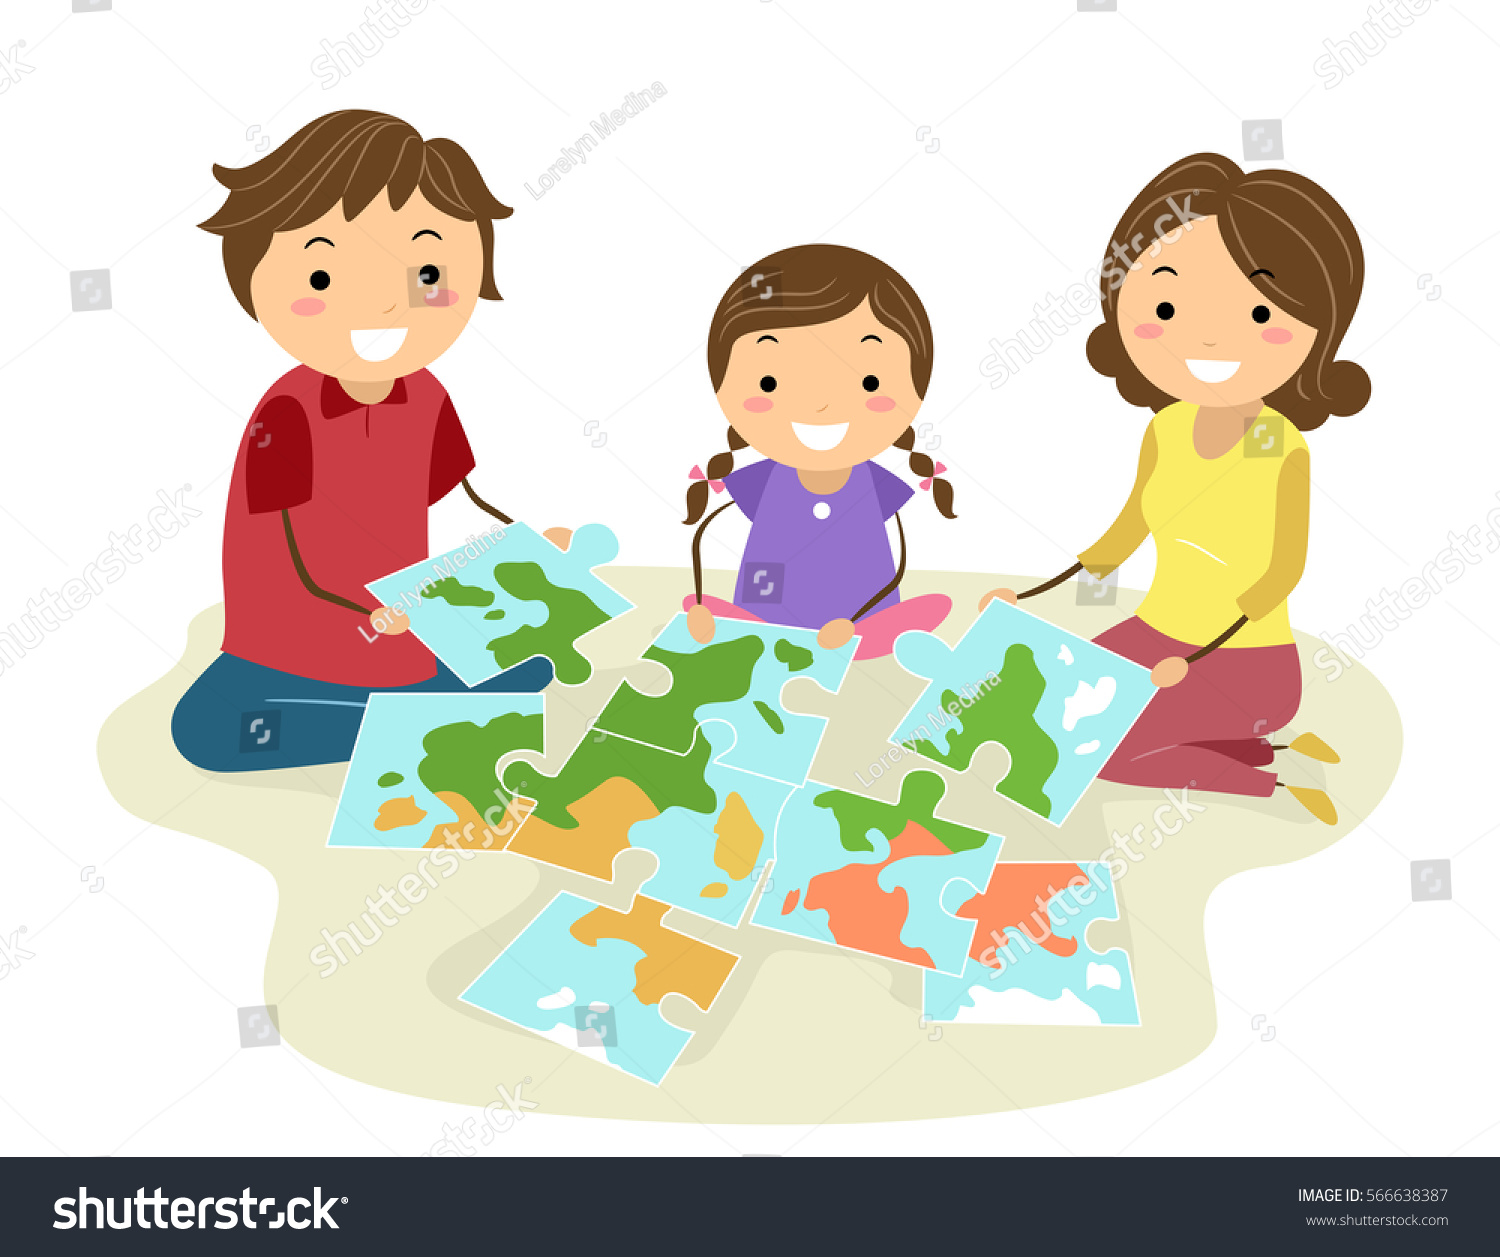 Stickman illustration family completing jigsaw puzzle vectores en stickman illustration family completing jigsaw puzzle vectores en stock 566638387 shutterstock gumiabroncs Images